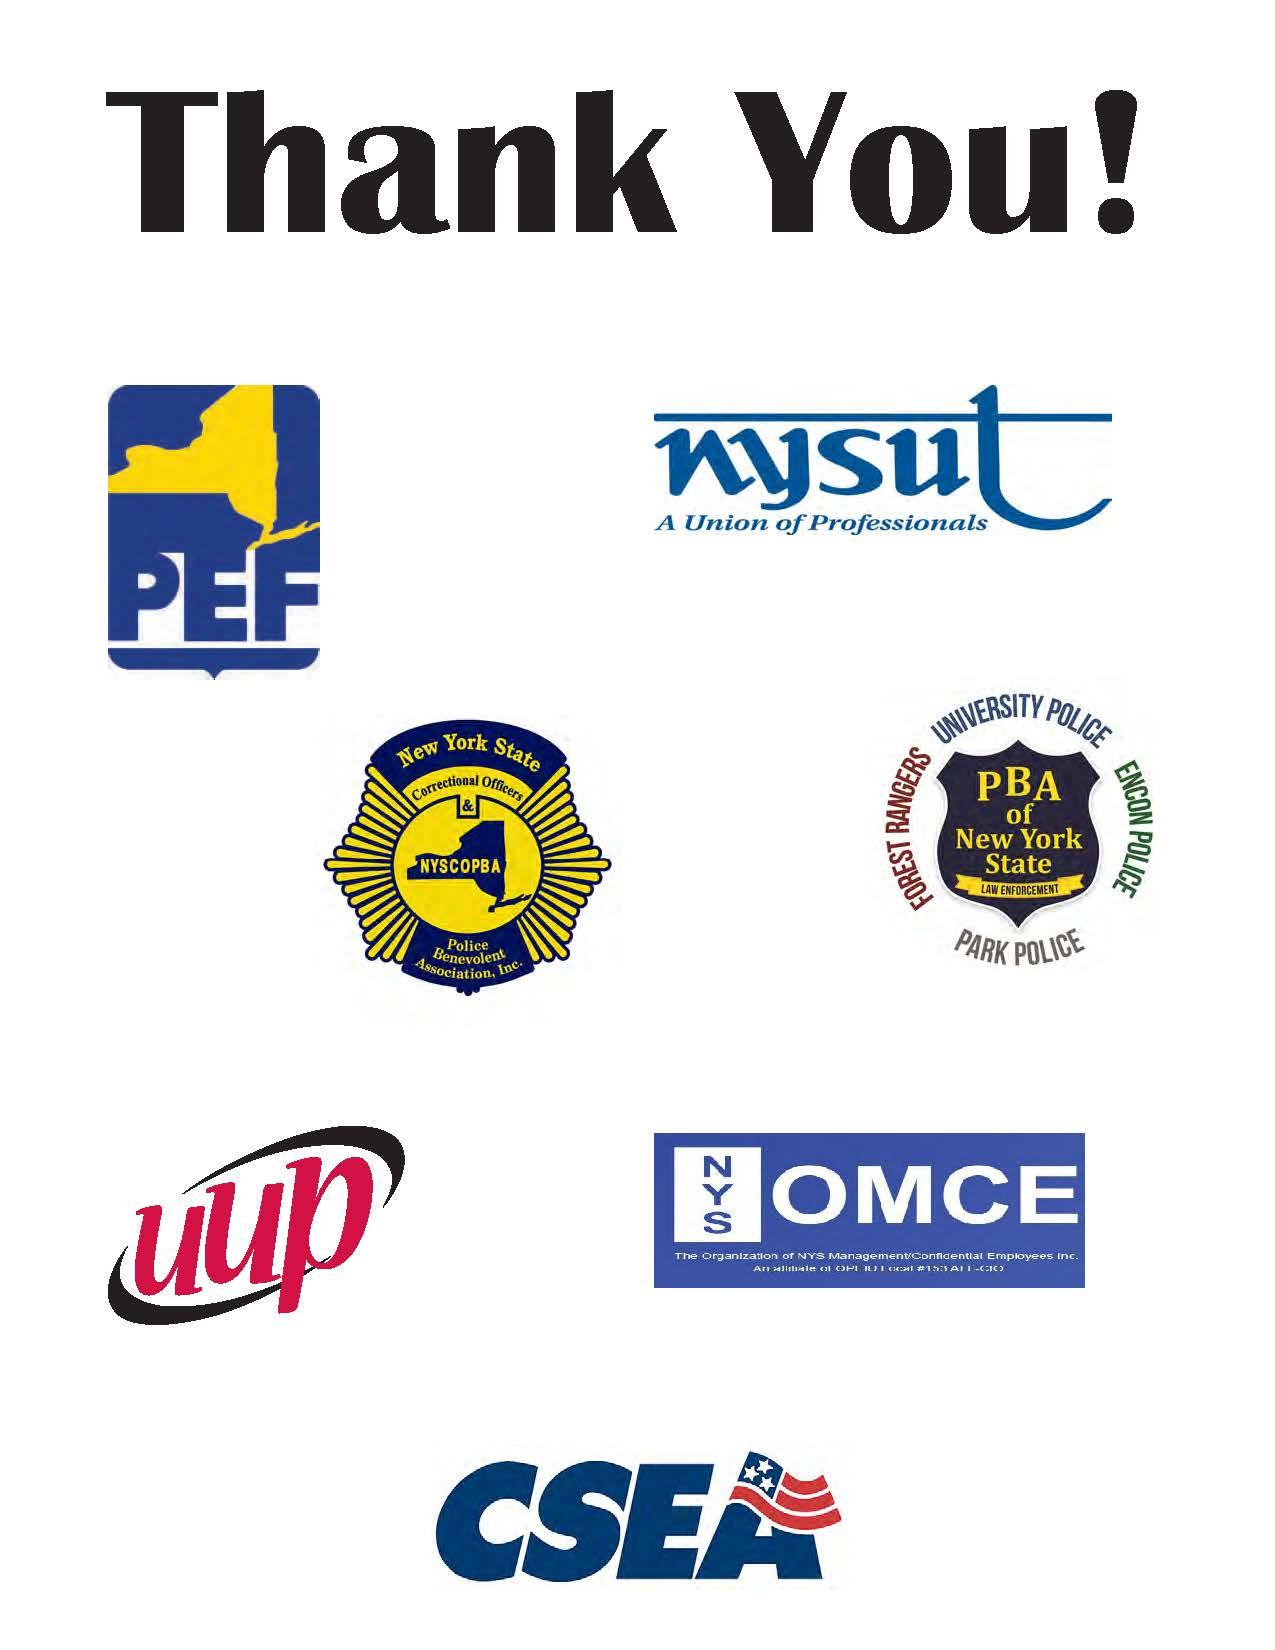 Campus Unions Say Thank You for Your Contribution!